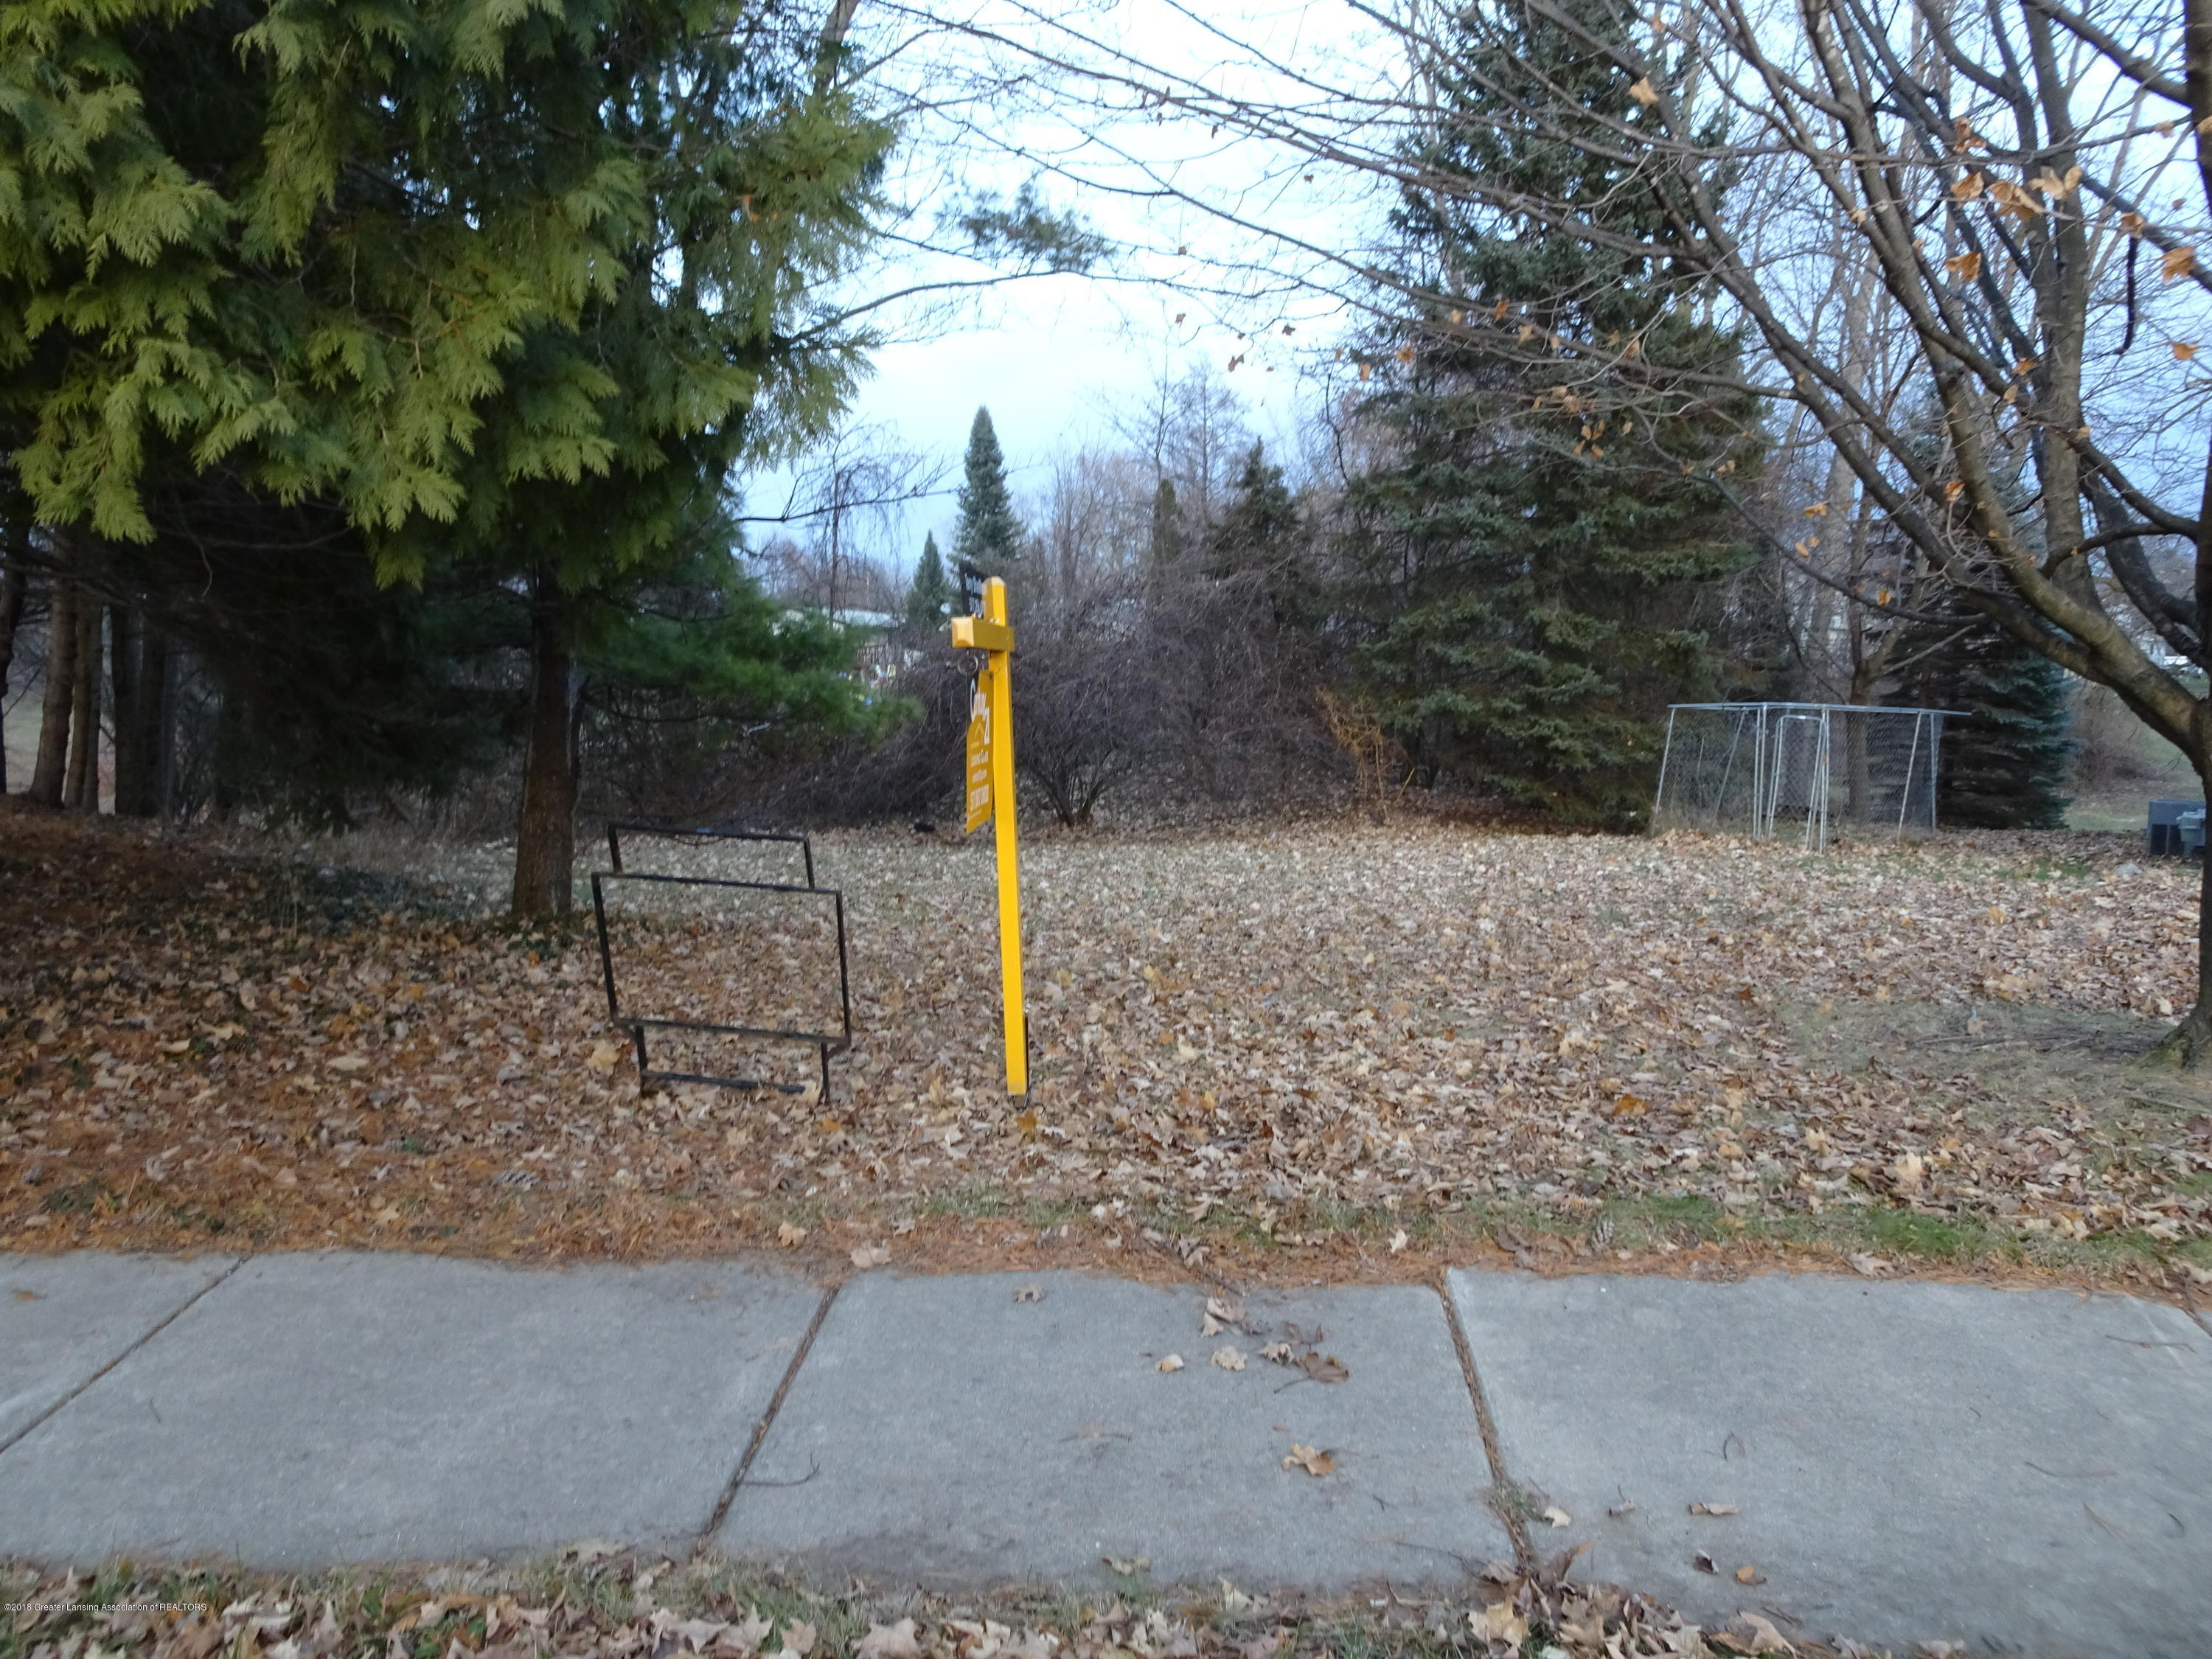 0 Lochinver Cir - Vacant Land - 1